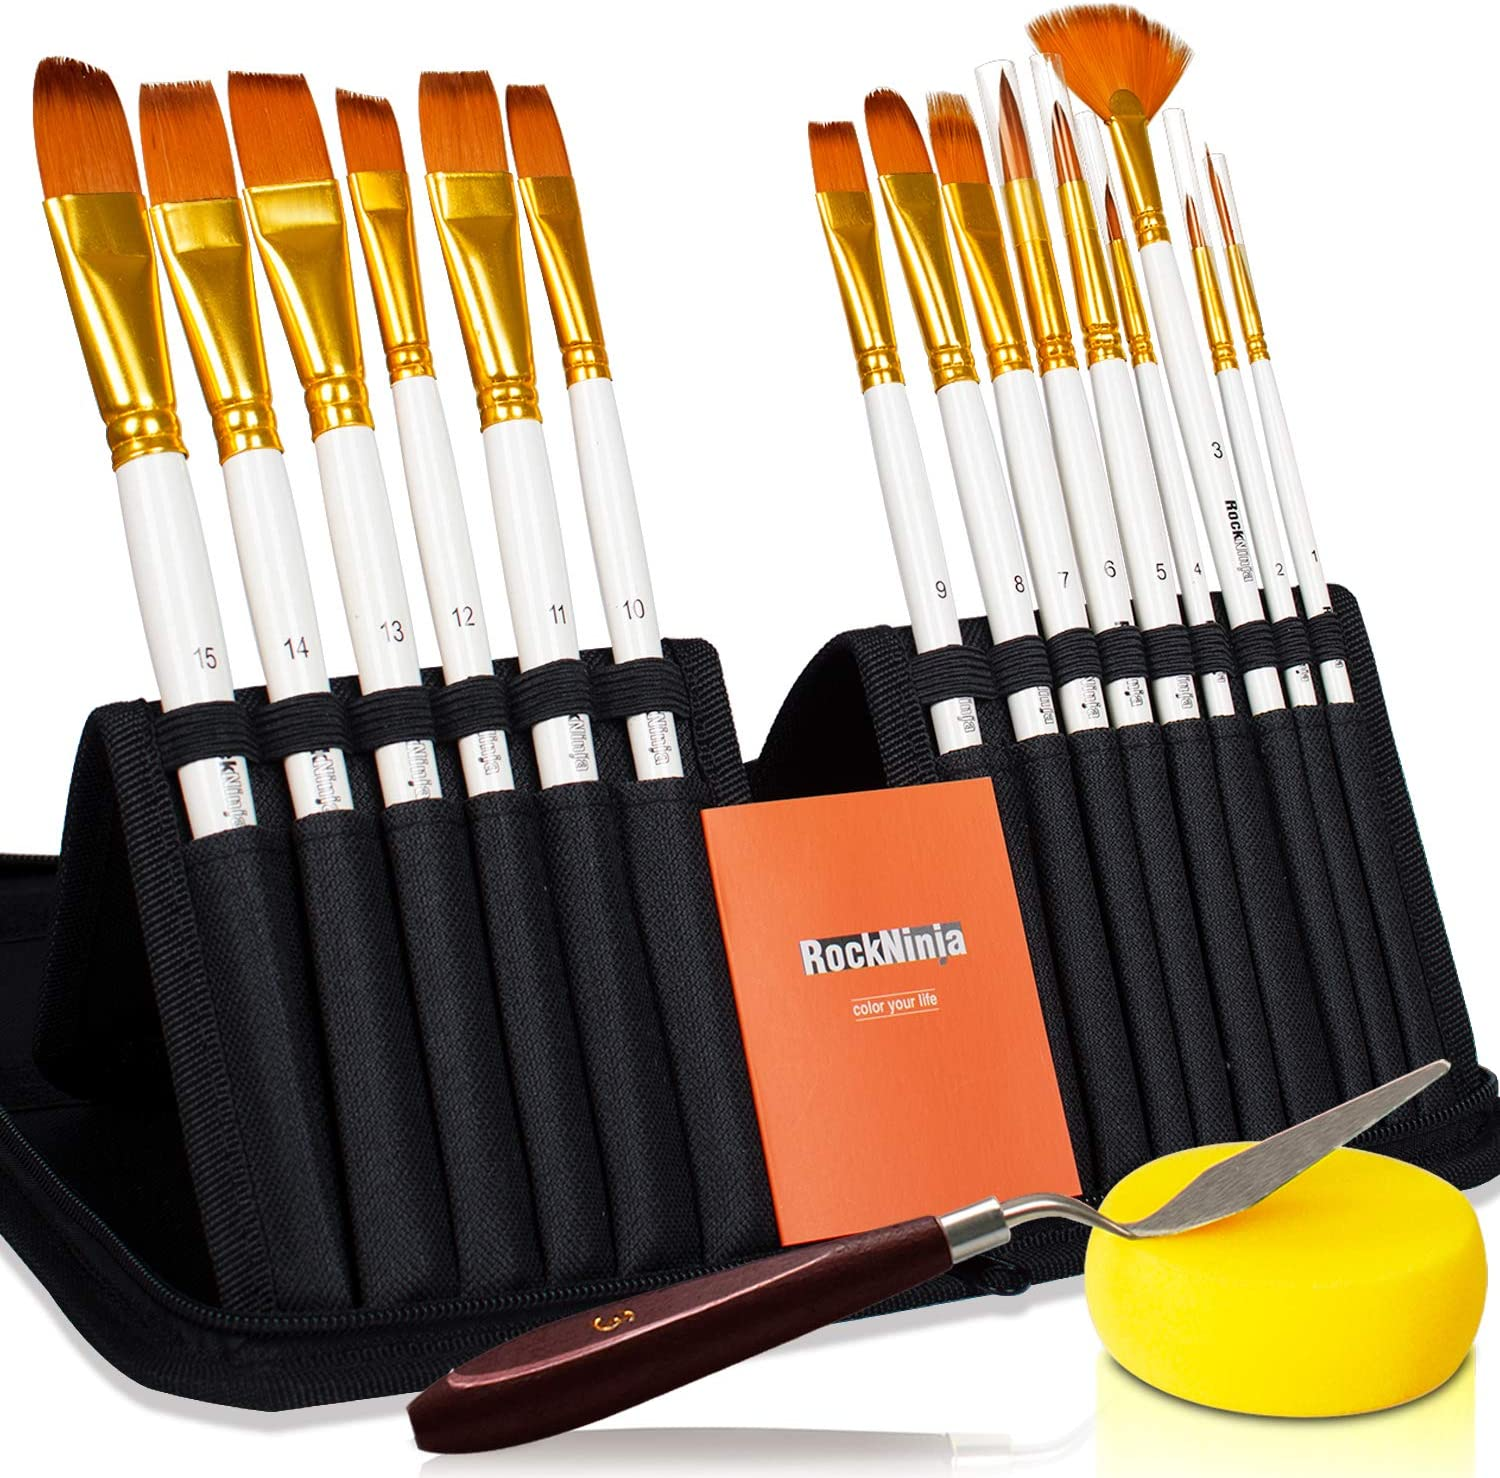 Rock Ninja New 15Pcs Artist Paint Brushes Set Includes Pop-up Carrying Case,for Acrylic, Oil, Watercolor, Creative Body Paint and Gouache Painting